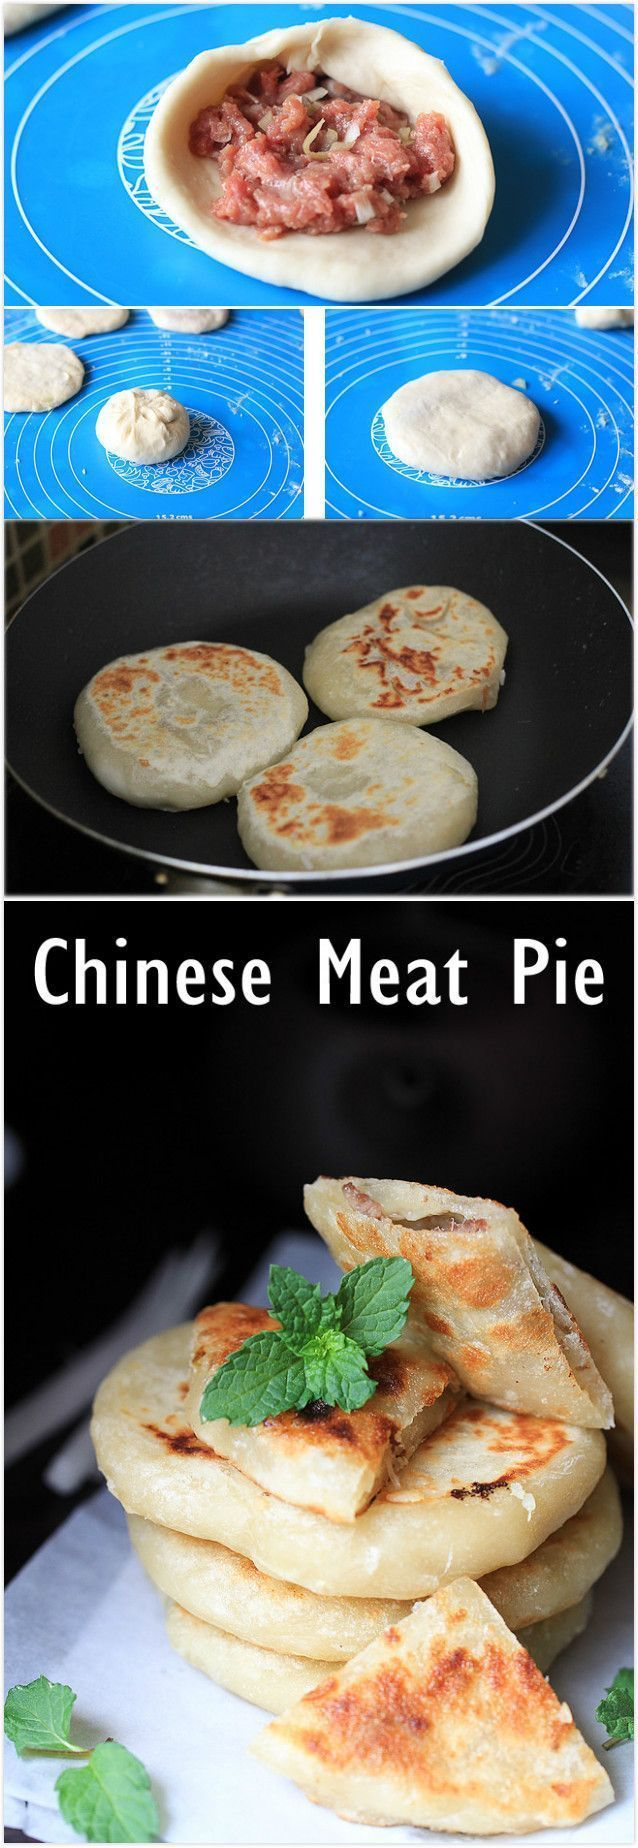 Chinese meat pie xian bing china sichuan food chinese food chinese meat pie xian bing china sichuan food chinese food recipes pinterest recetas asiticas y recetas forumfinder Image collections